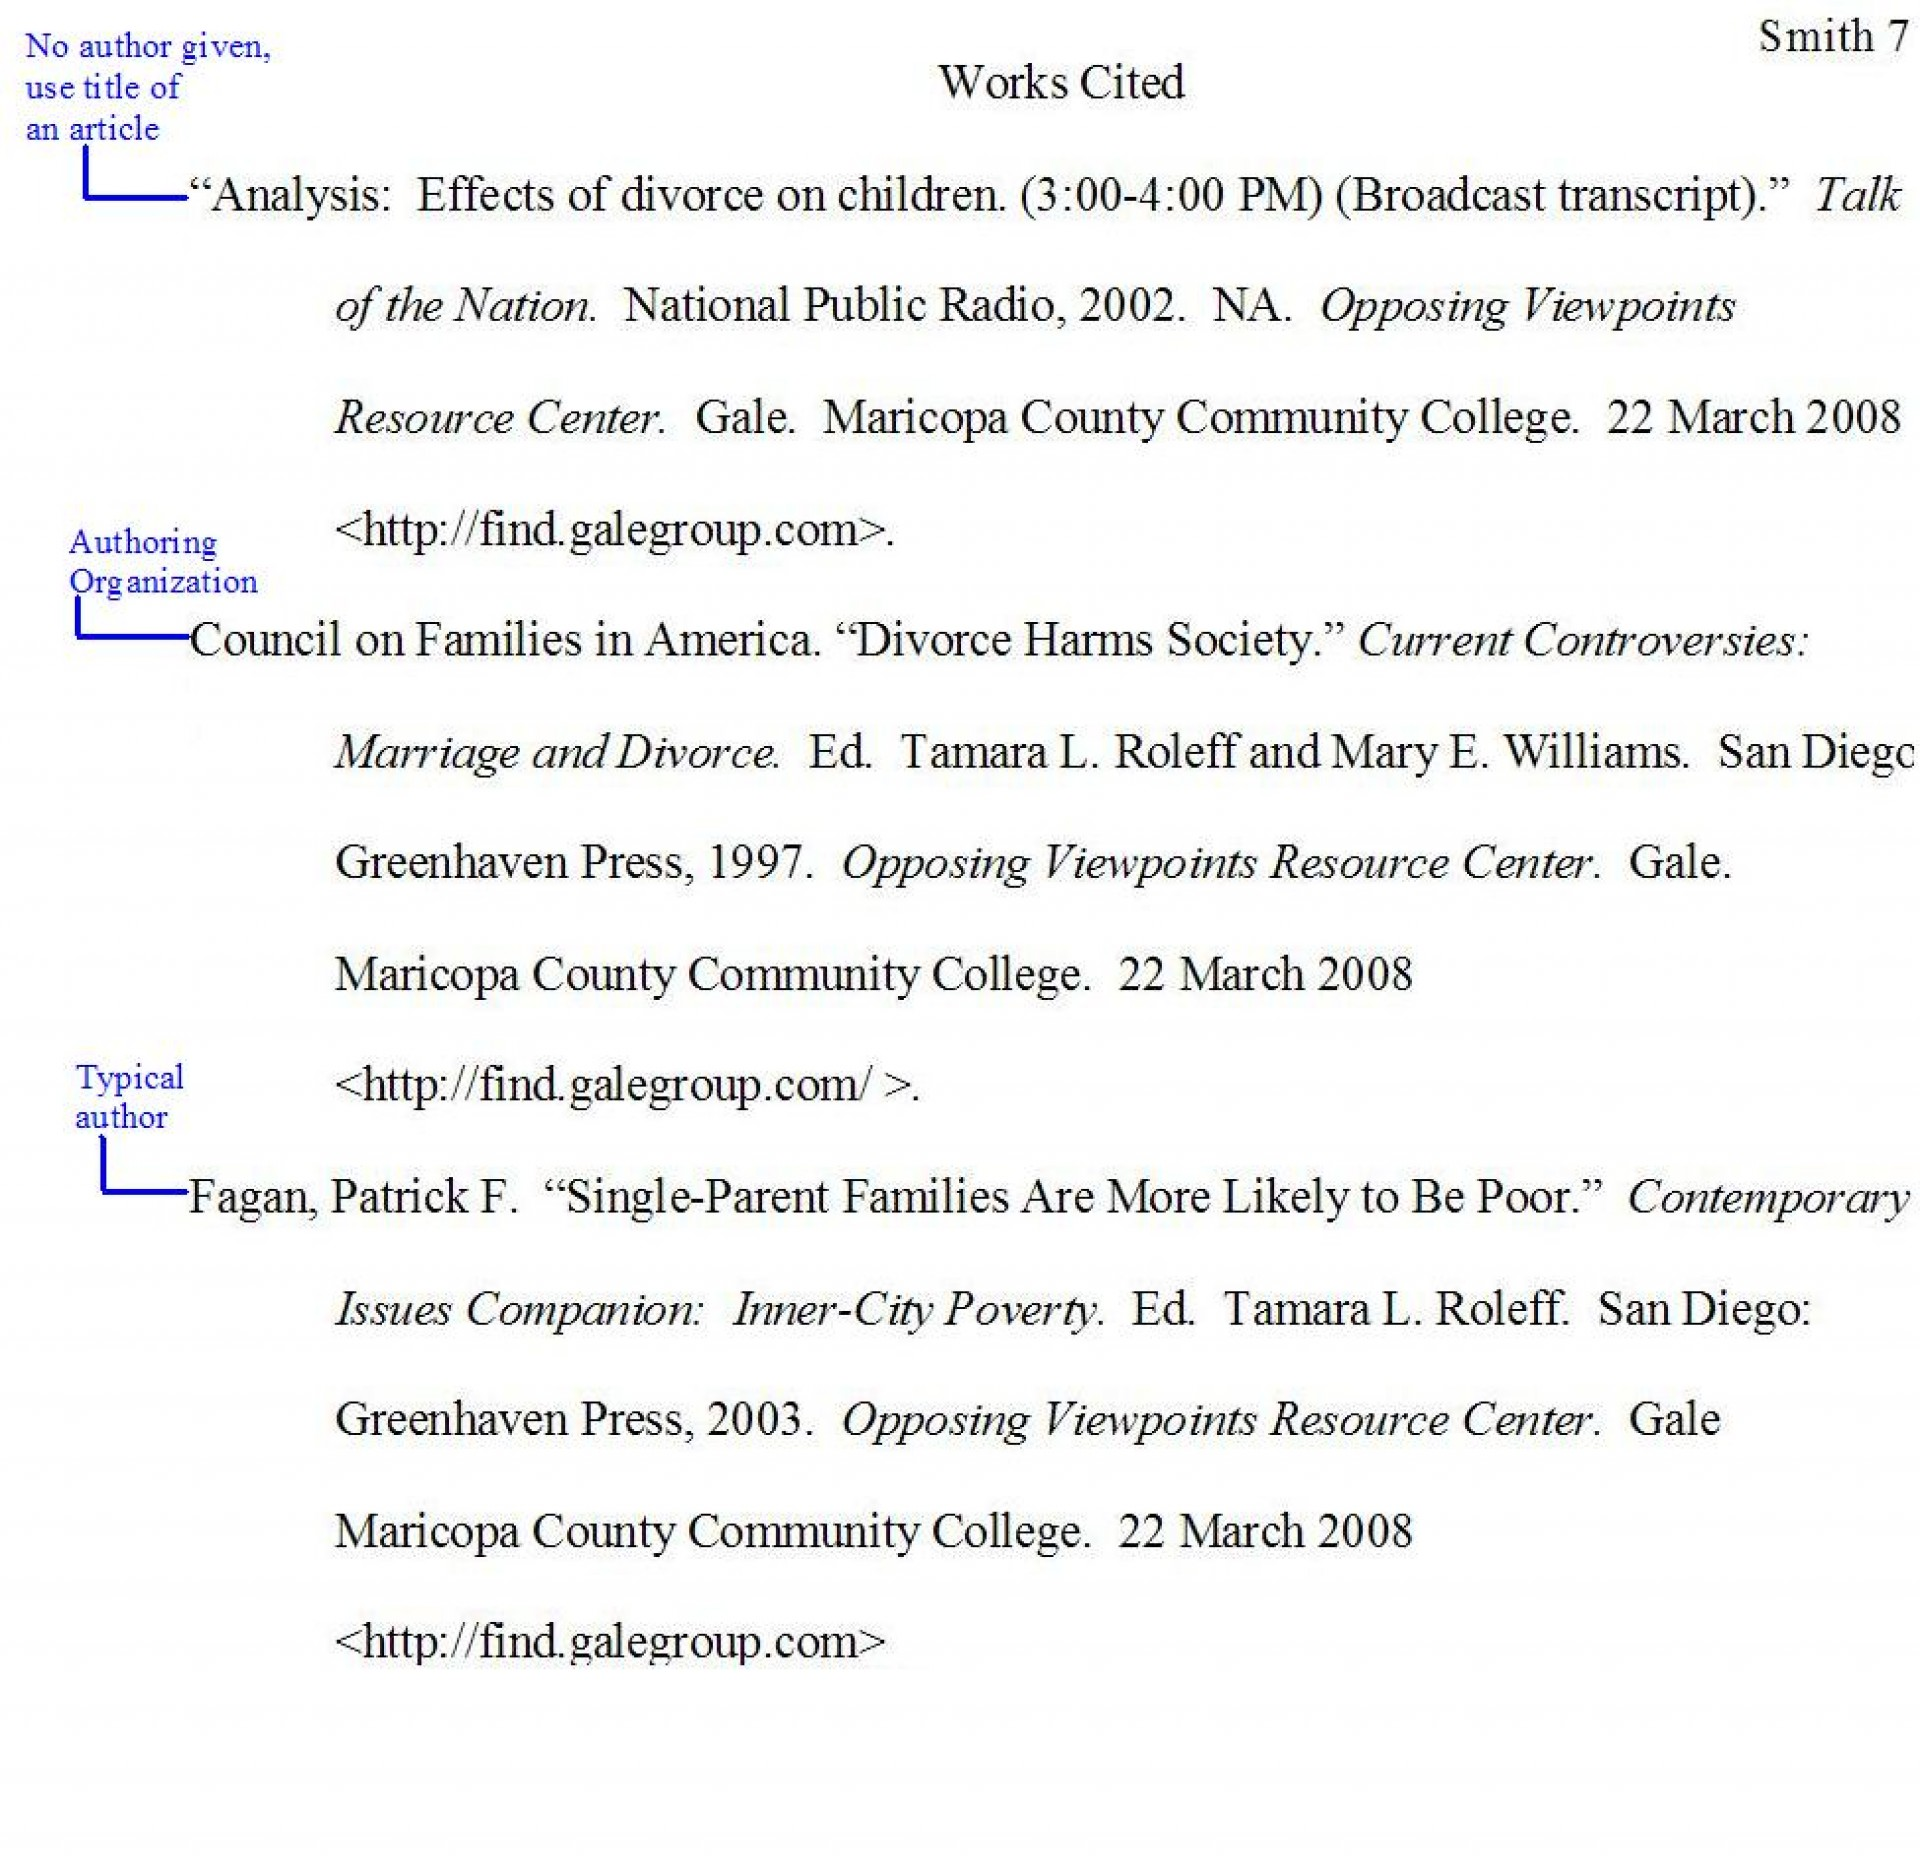 021 Research Paper Samplewrkctd Jpg Apa Format Reference Unique Page References List 1920